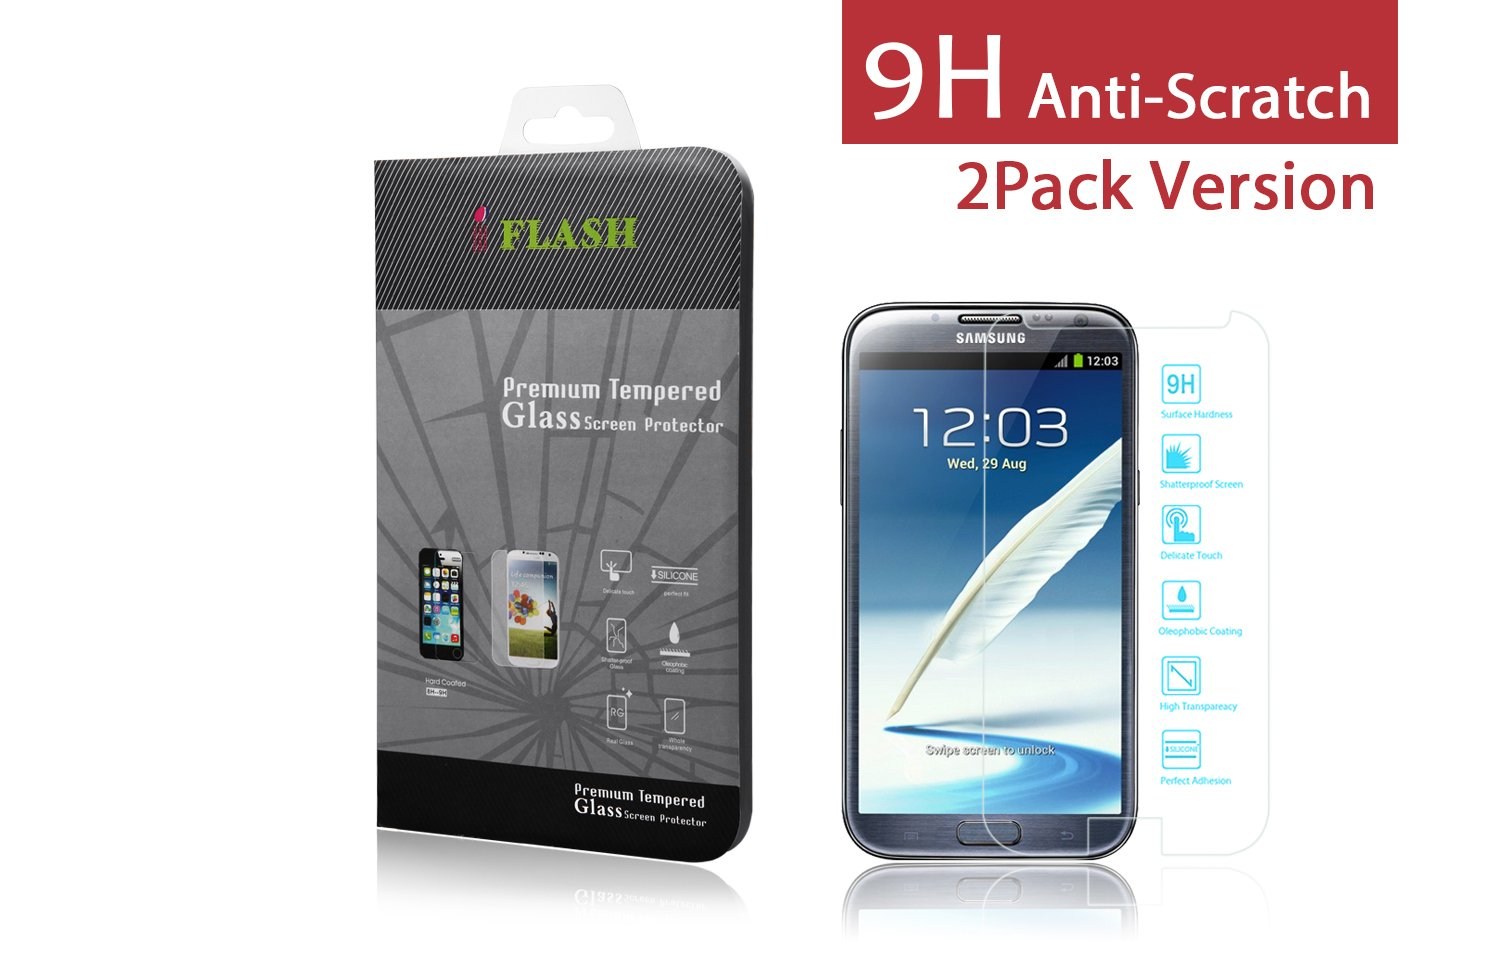 iFlash® 2 Pack of Premium Tempered Glass Screen Protector For Samsung Galaxy Note 2 / Note II / N7100 - Protect Your Screen from Scratches and Bubble Free - Maximize Your Resale Value - 99.99% Clarity and Touchscreen Accuracy (2Pack, Retail Package)